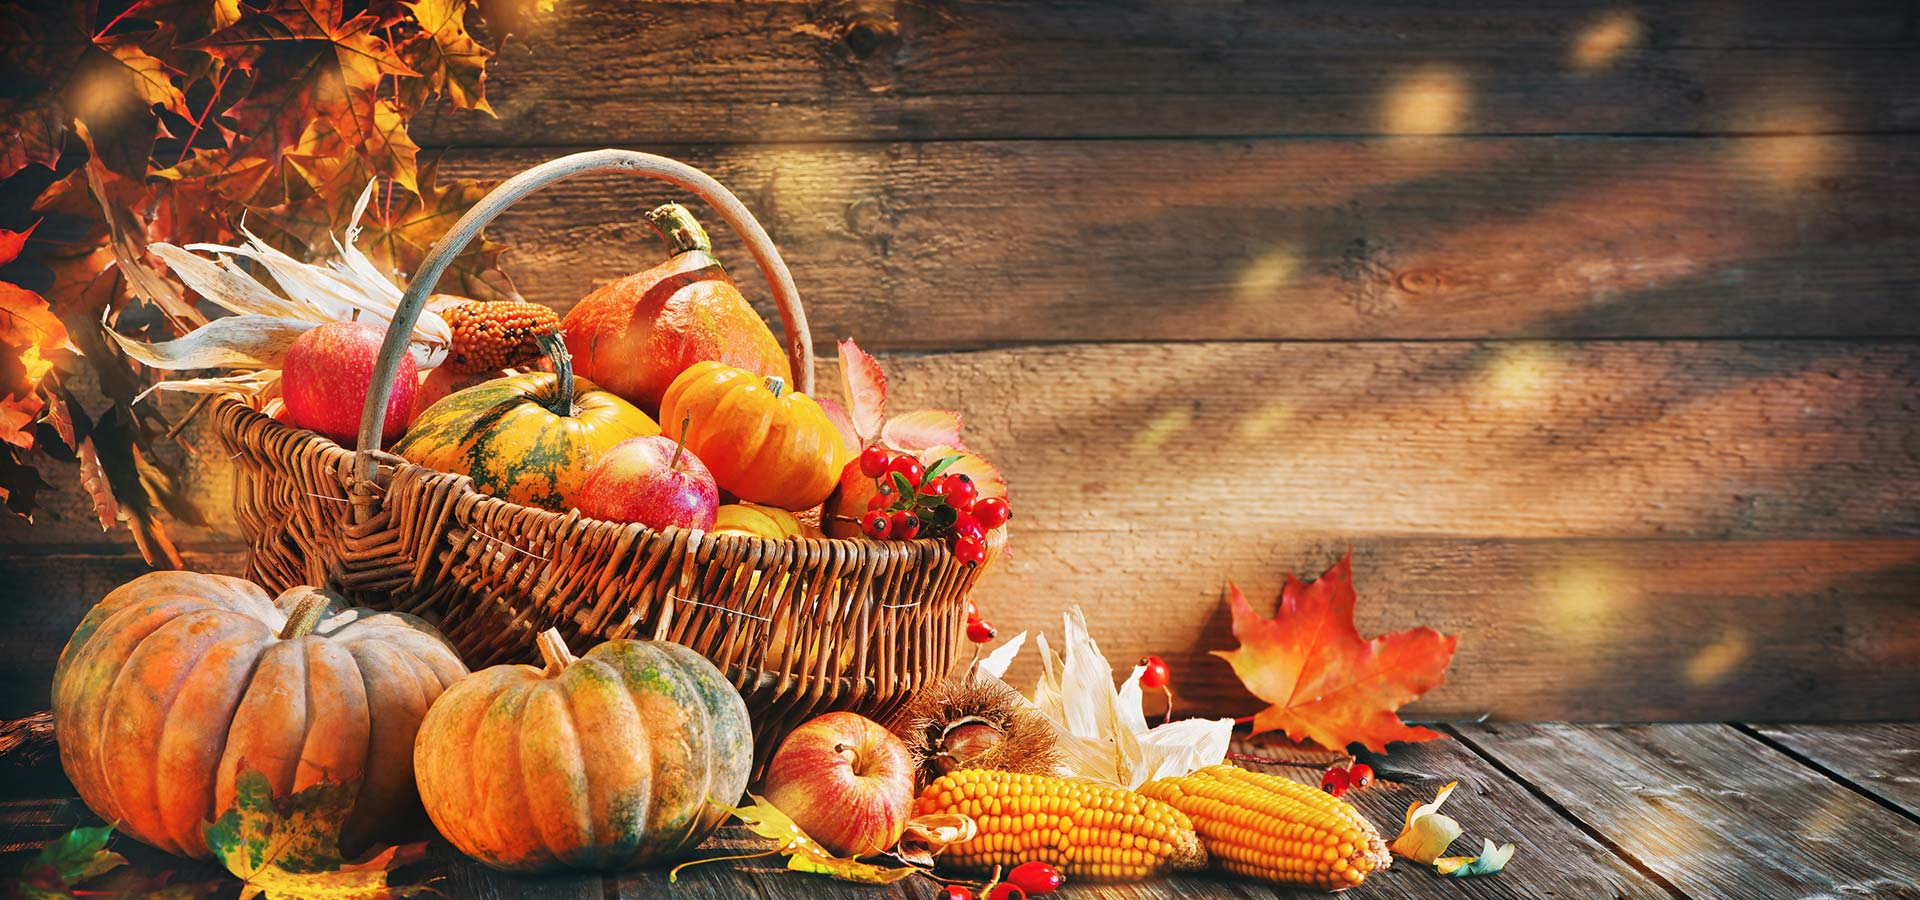 Top Things To Do on Thanksgiving Day